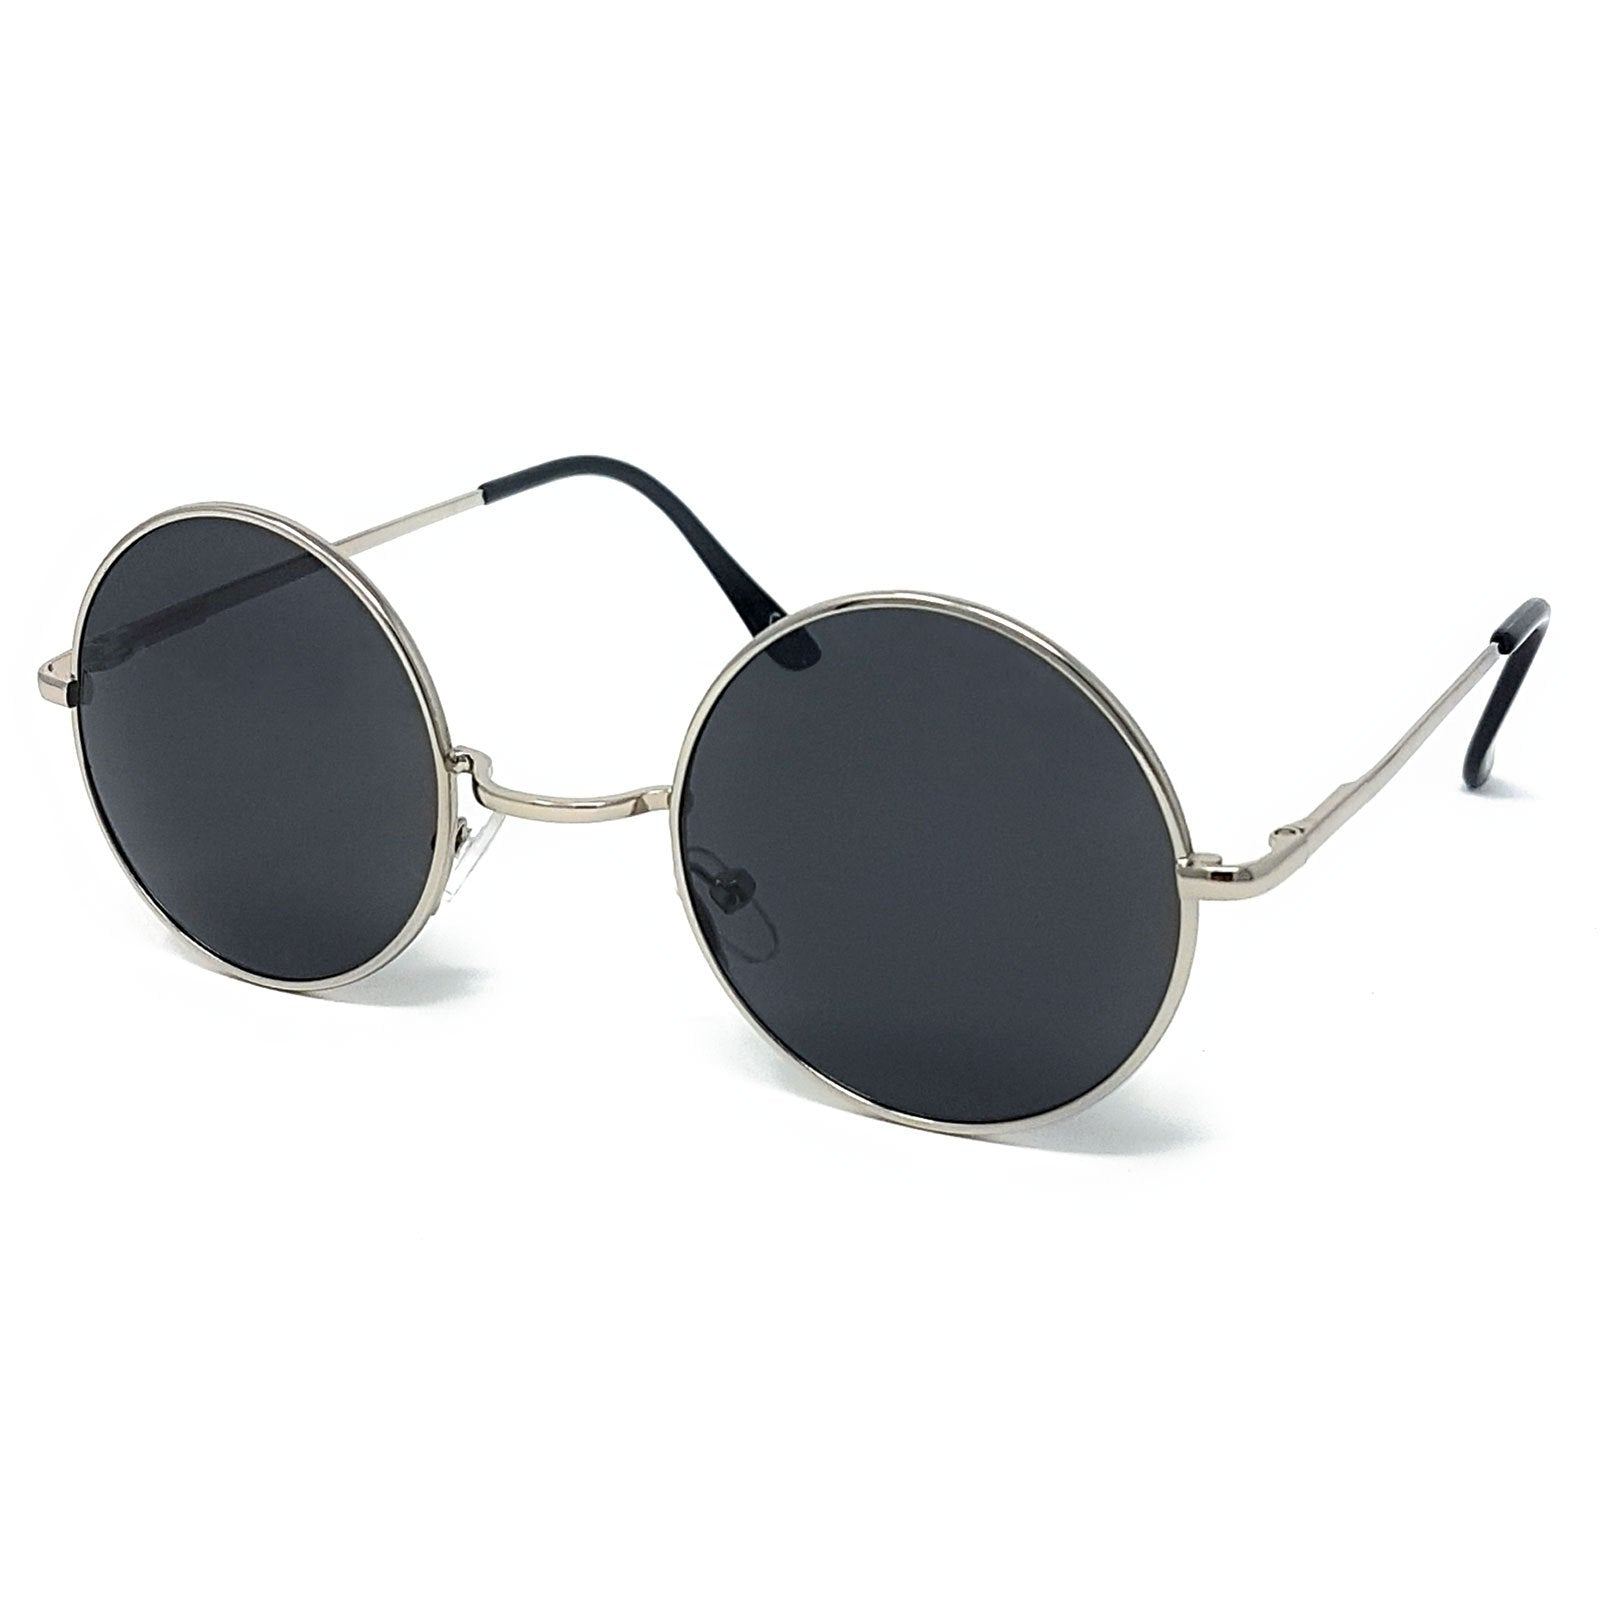 Wholesale Round Lens Sunglasses - Silver Frame, Black Lens